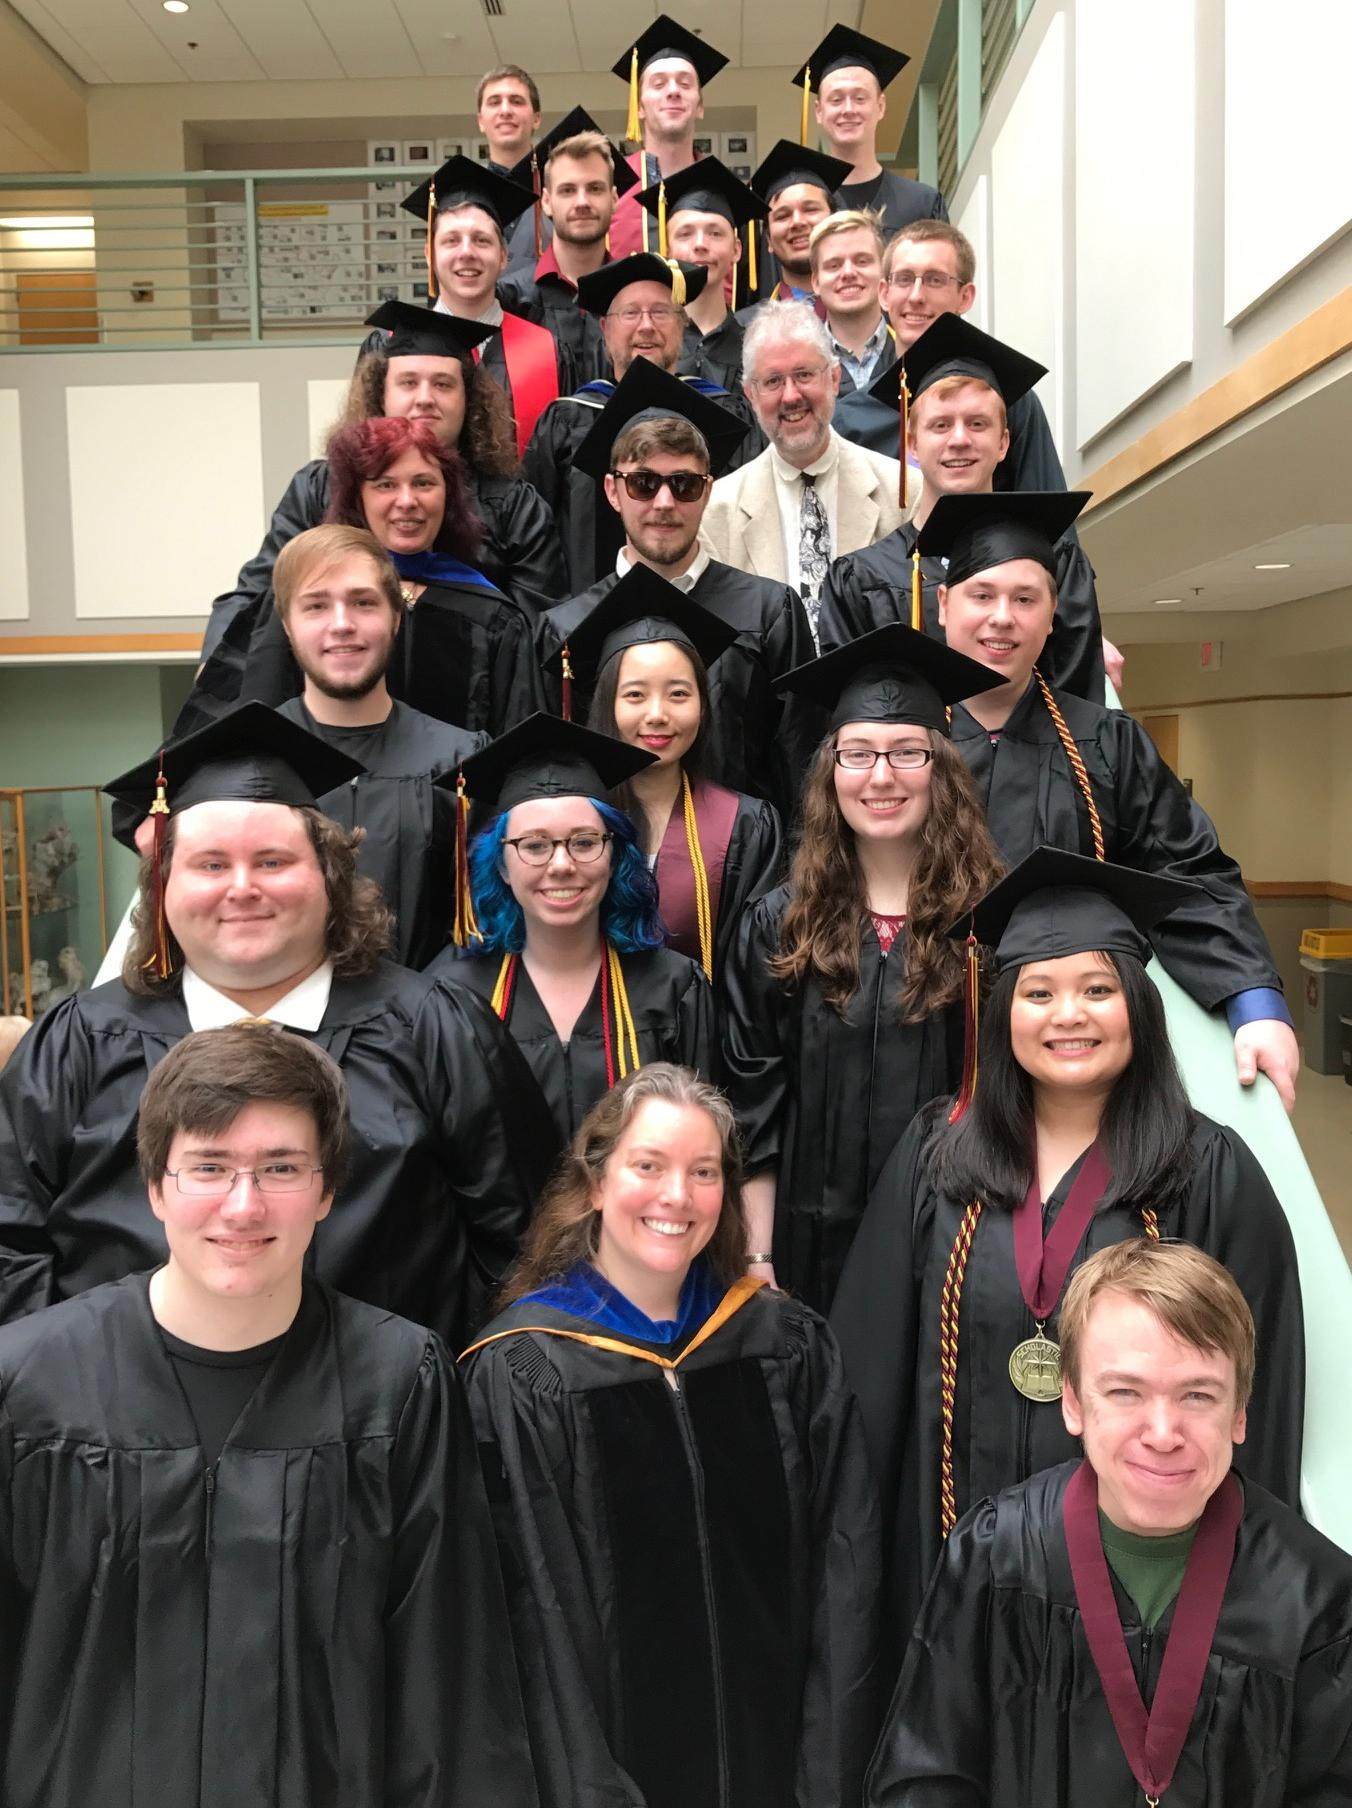 Computer Science Graduates and Faculty, May 13, 2017